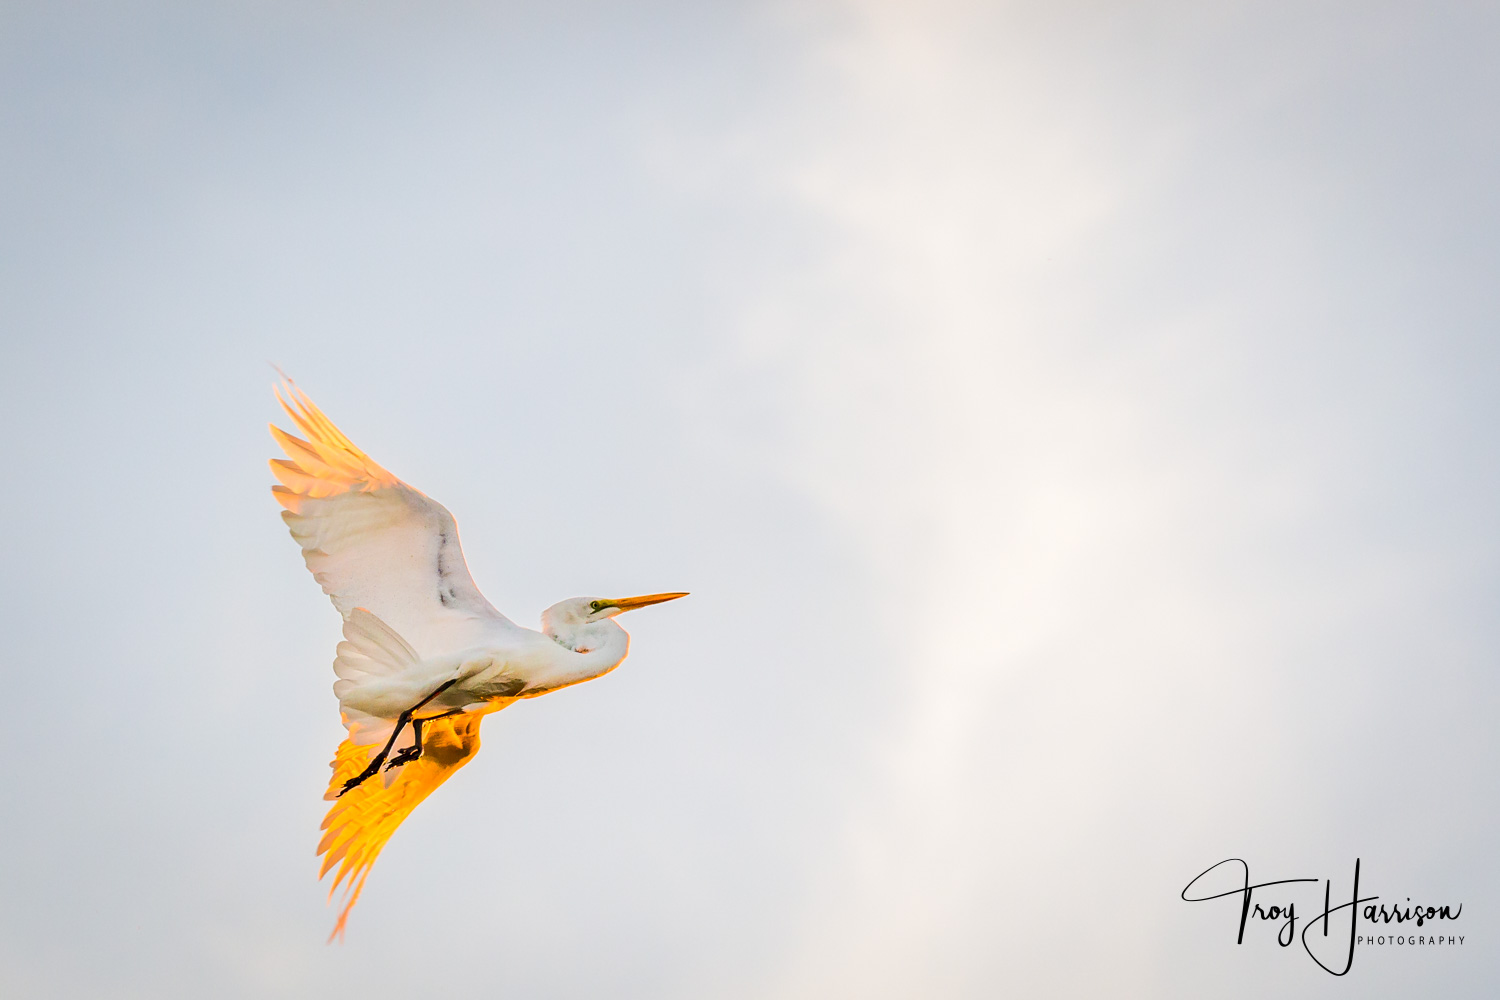 1 - Great Egret, Everglades, Nov. 2018, img 2524-2.jpg